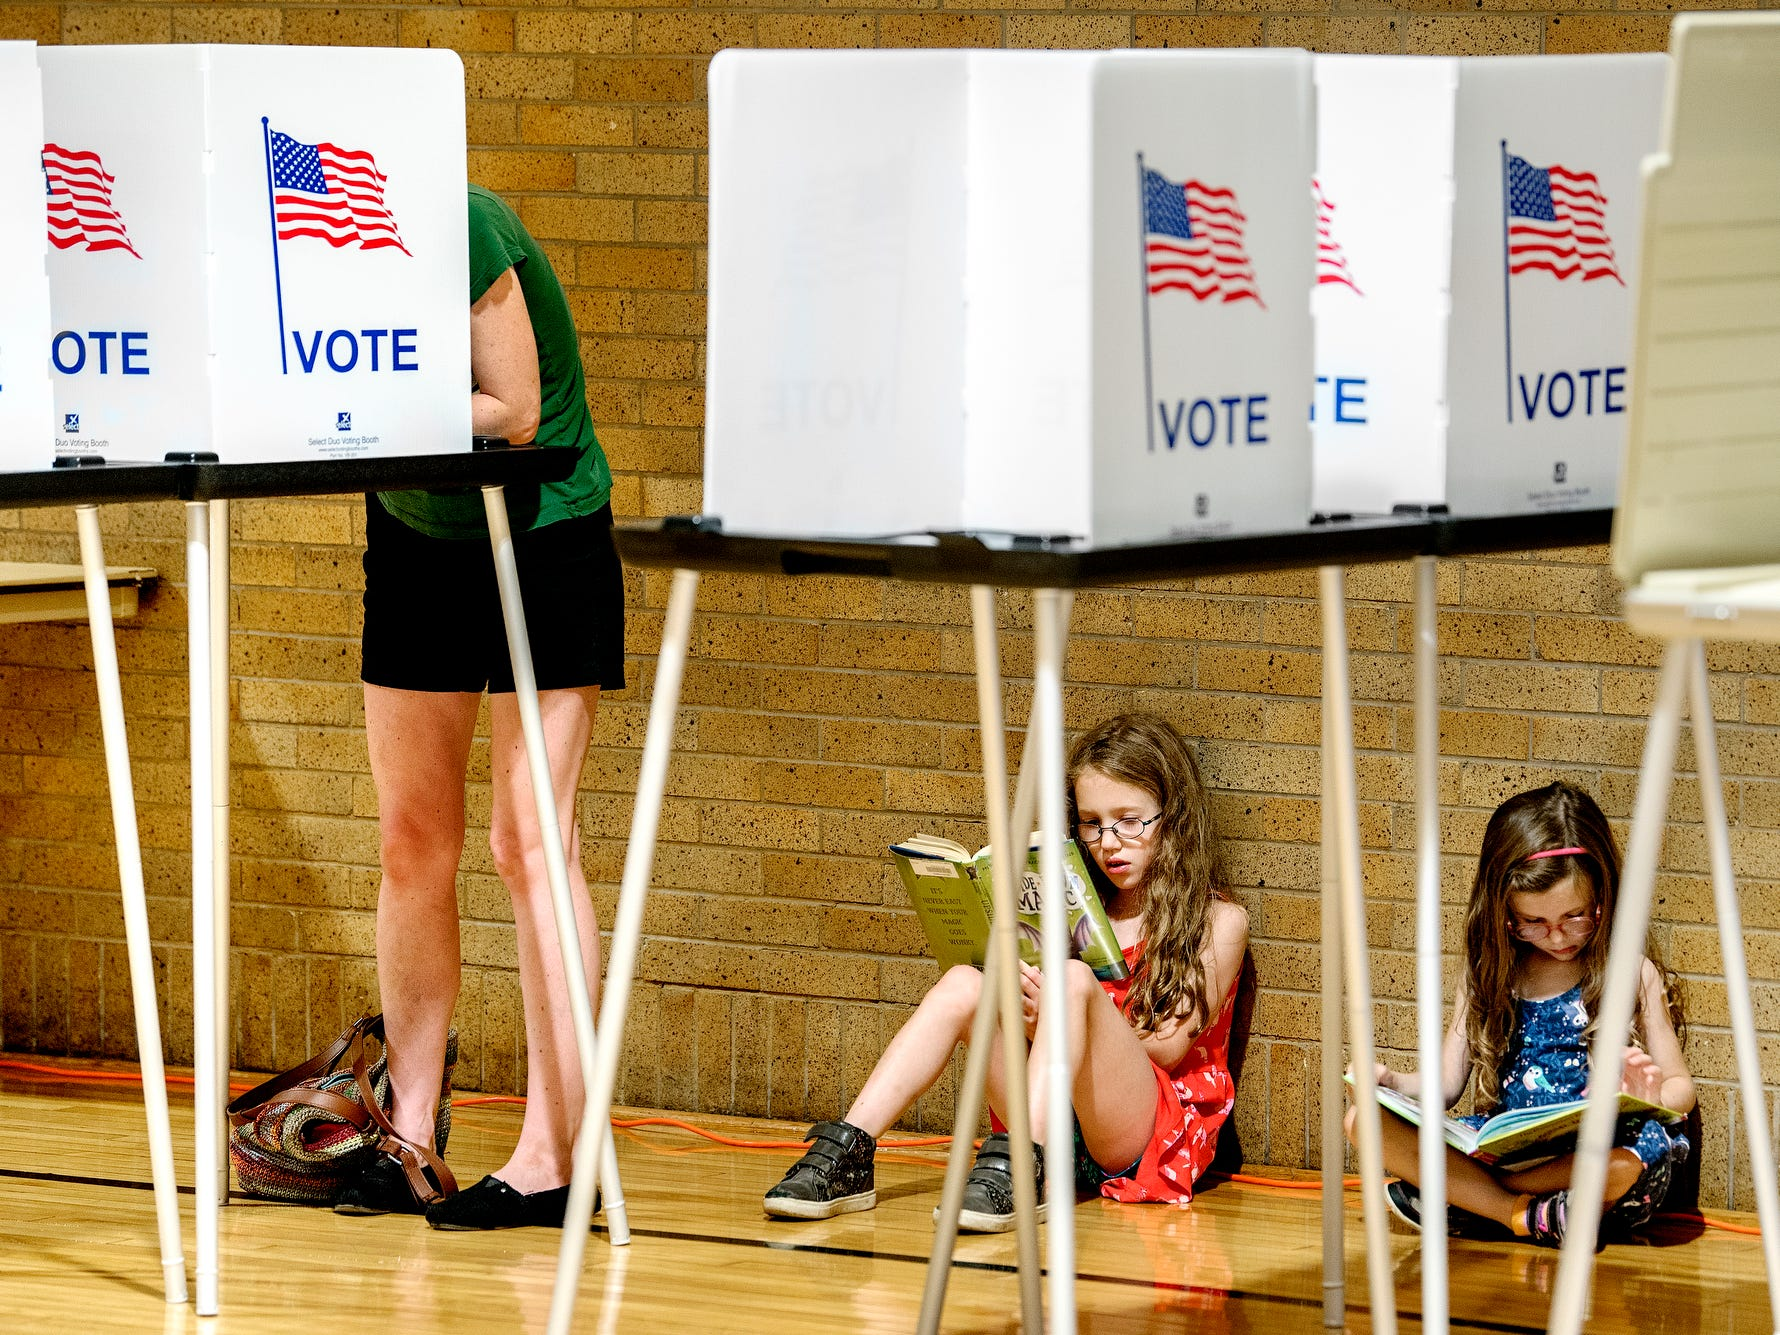 Seven-year-old November Moll, center, and her sister Selah, 4, right, read books as their mother Valerie votes on Tuesday, Aug. 7, 2018, at the Foster Community Center in Lansing.